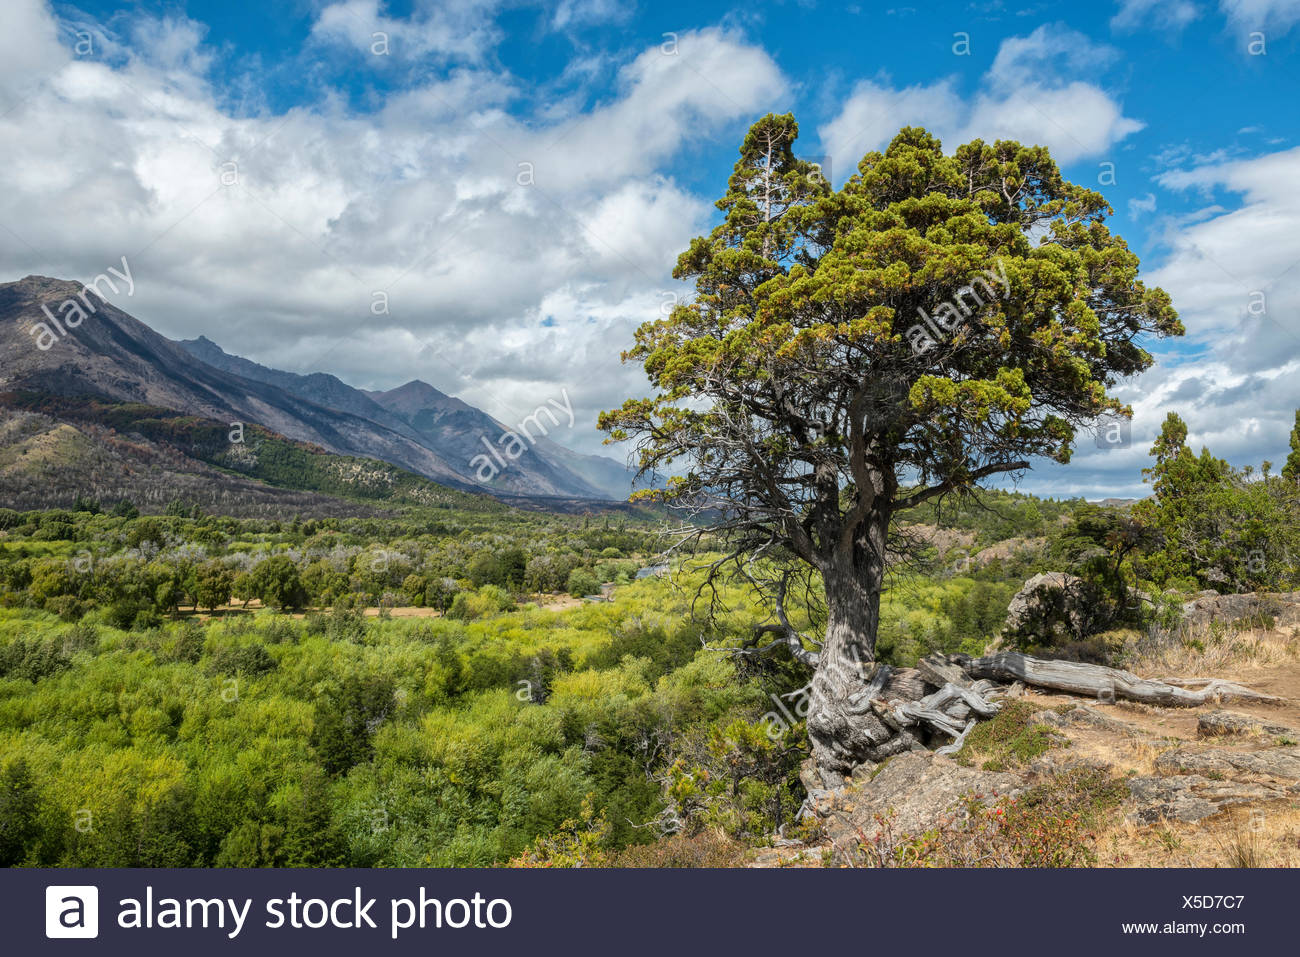 South America,Argentina,Patagonia,Chubut,Esquel,Los Alerces,National Park - Stock Image